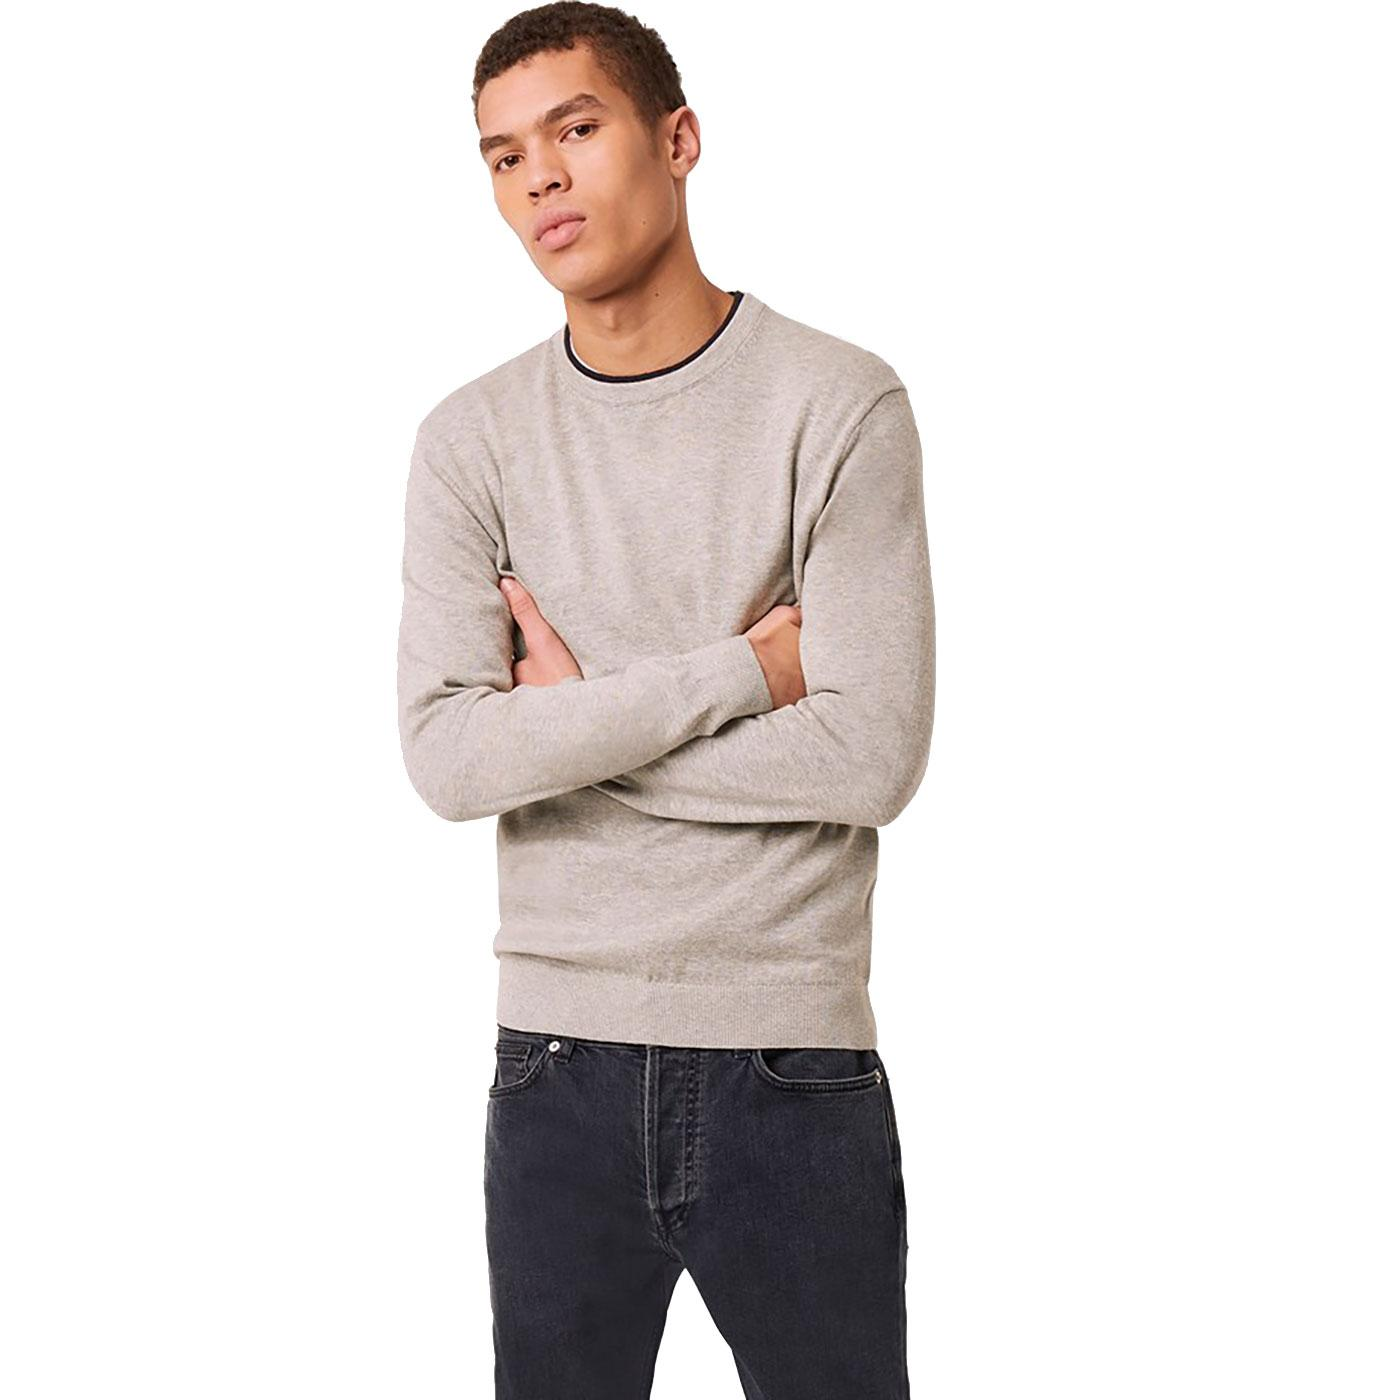 FRENCH CONNECTION Double Collar Knitted Jumper LG